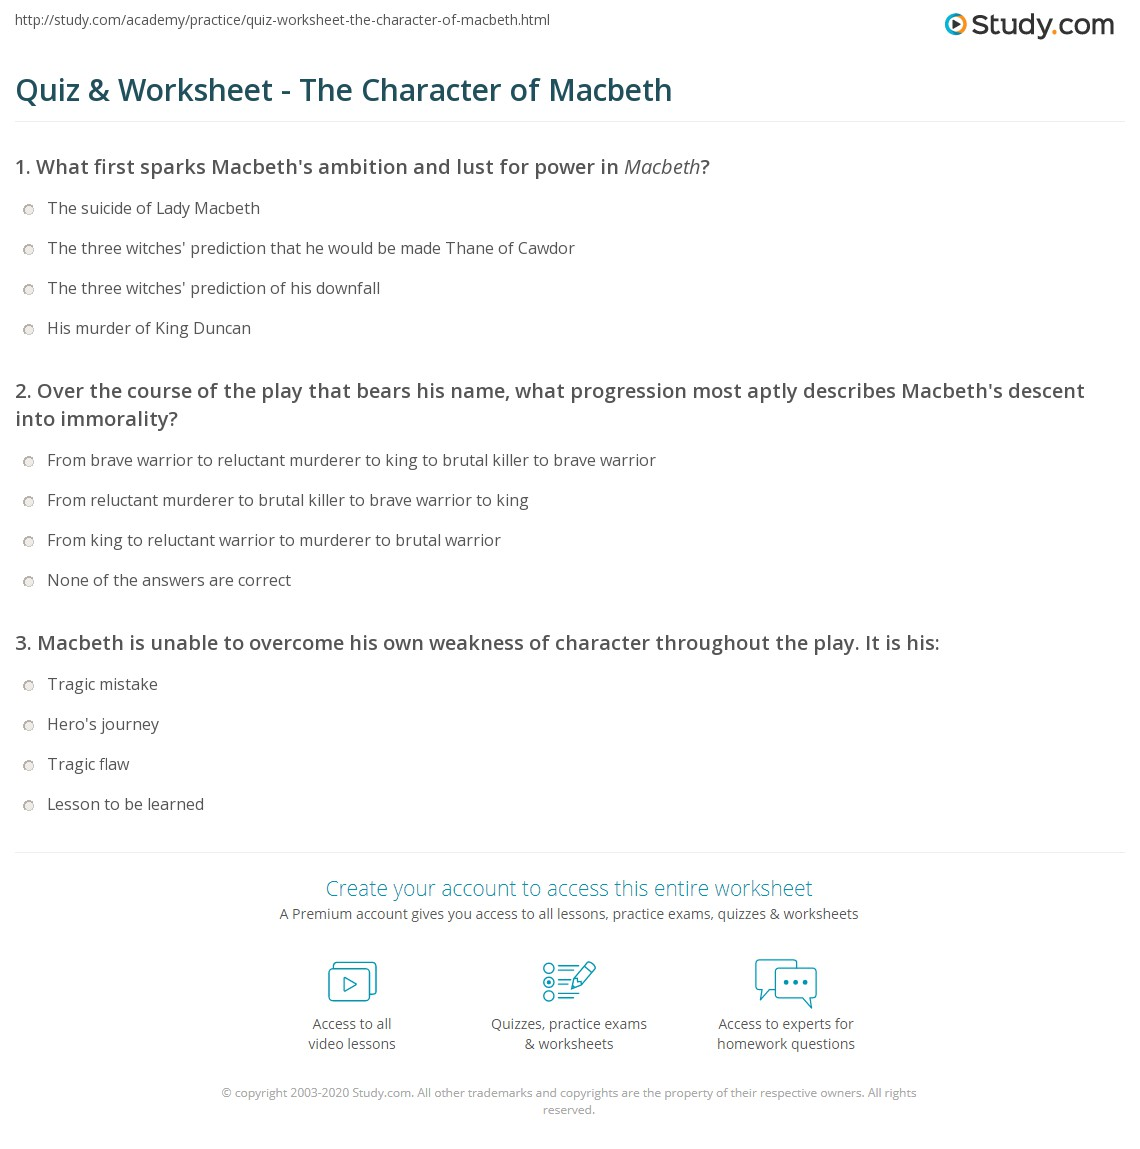 an analysis of the theme characterization and thoughts on macbeth a play by william shakespeare Macbeth study guide contains a biography of william shakespeare, literature essays, a complete e-text, quiz questions, major themes, characters, and a full summary.